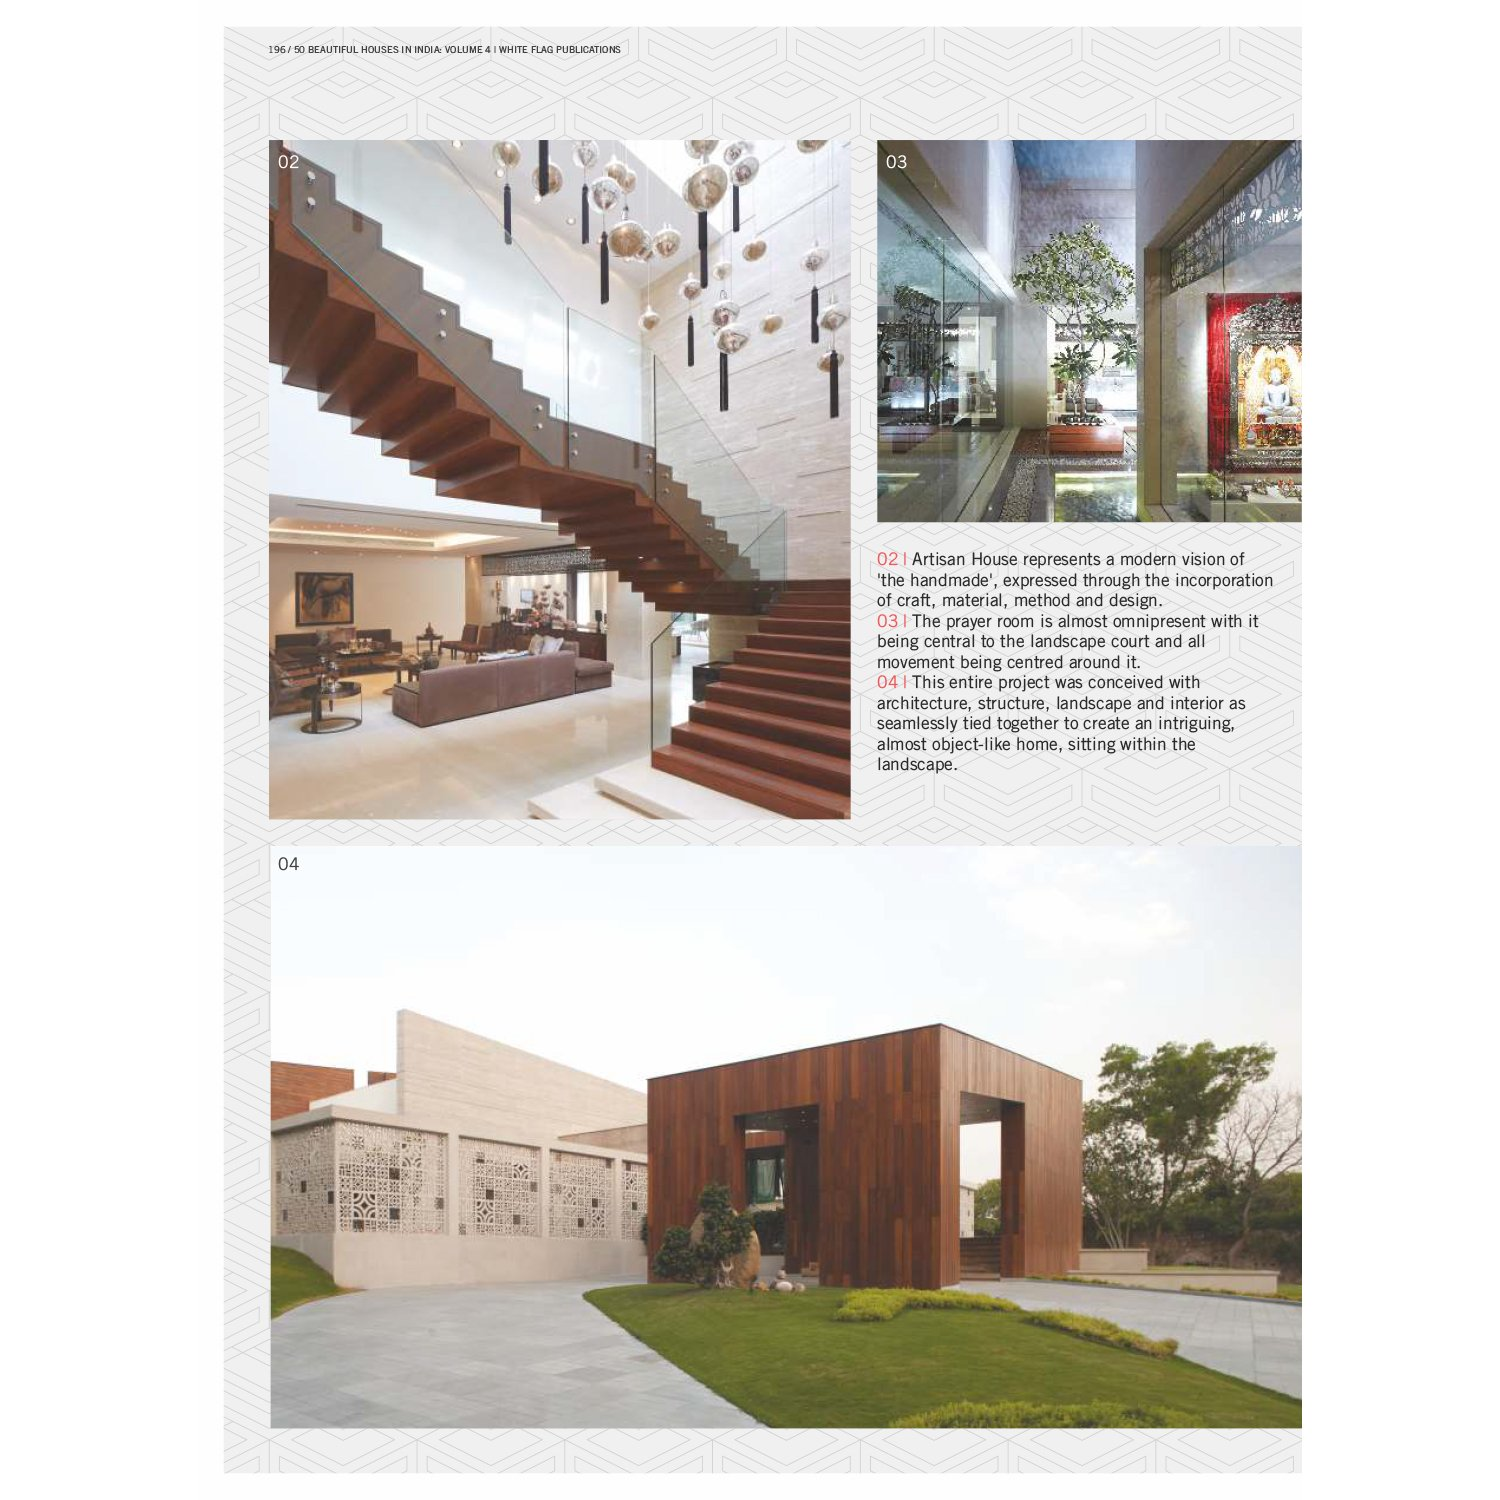 Buy 50 Beautiful Houses In India Volume 4 Book Online At Low Prices